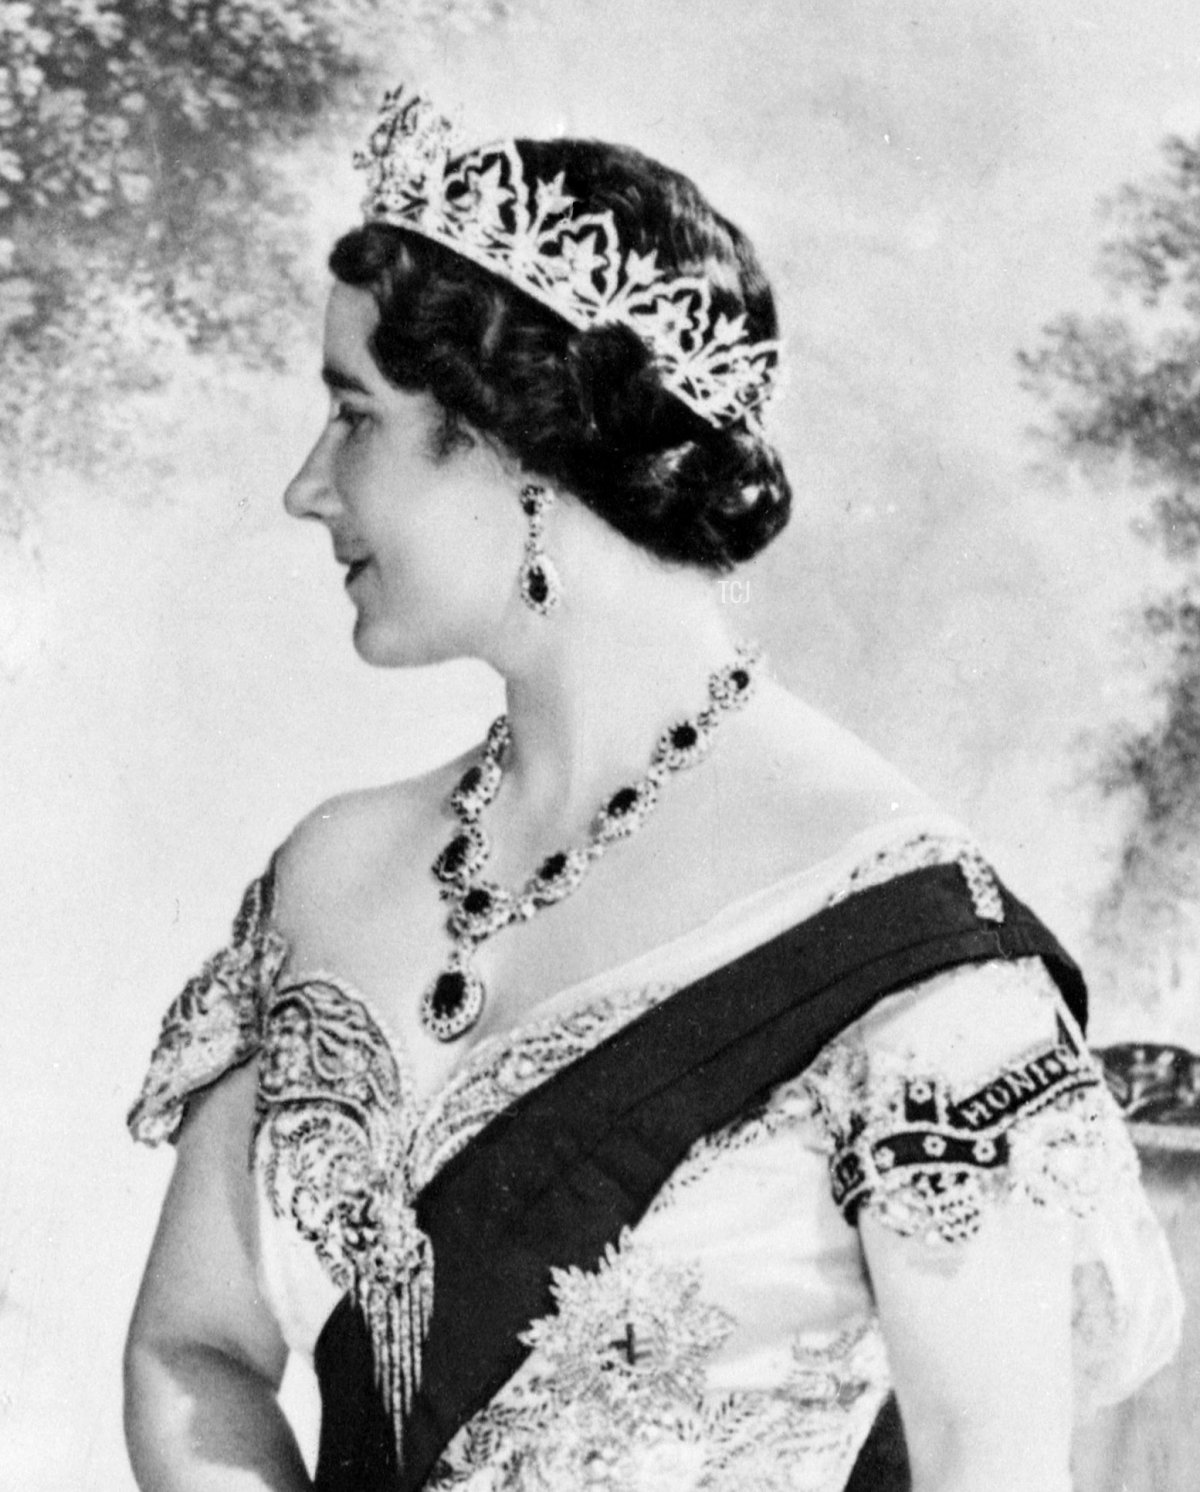 Queen Elizabeth, the former Duchess of York smiles as she poses in 1937 for official picture in London after the Coronation 12 May 1937 of the Duke of York